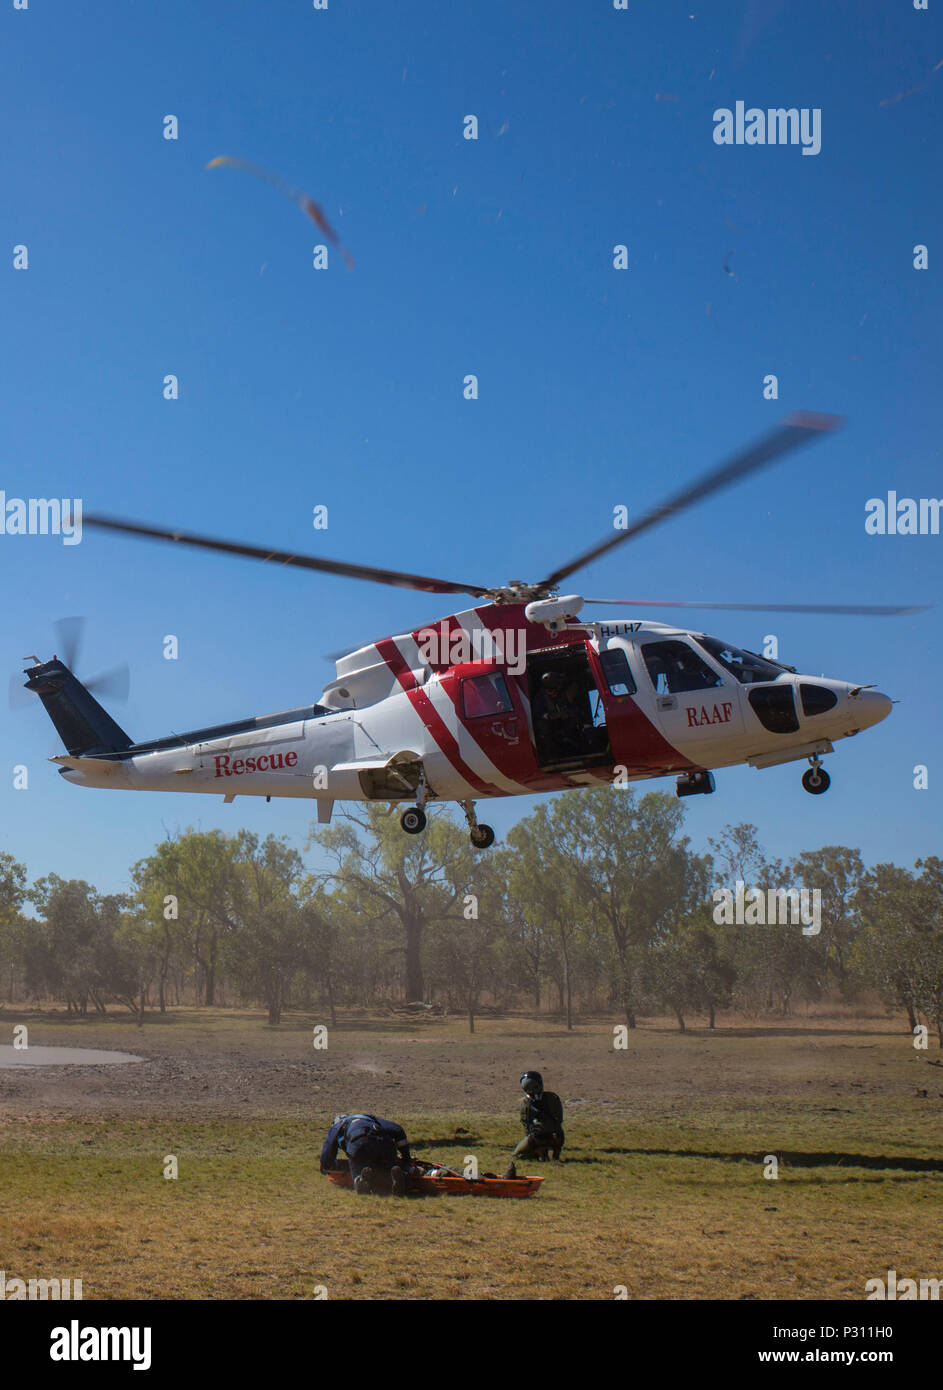 A Sikorsky S76A++ Search and Rescue helicopter approaches to hoist a stretcher during SAR training at Exercise Pitch Black 2016, Royal Australian Air Force Base Tindal, Australia, Aug.16, 2016. The SAR team trains with local and international forces during exercises like Pitch Black to ensure all medical personnel that can respond to an aircraft emergency are capable of carrying out the same procedures. The biennial, multinational exercise involves approximately 10 allied nations and prepares these forces for possible real-world scenarios. The bilateral effort amongst Exercise Pitch Black 2016 - Stock Image